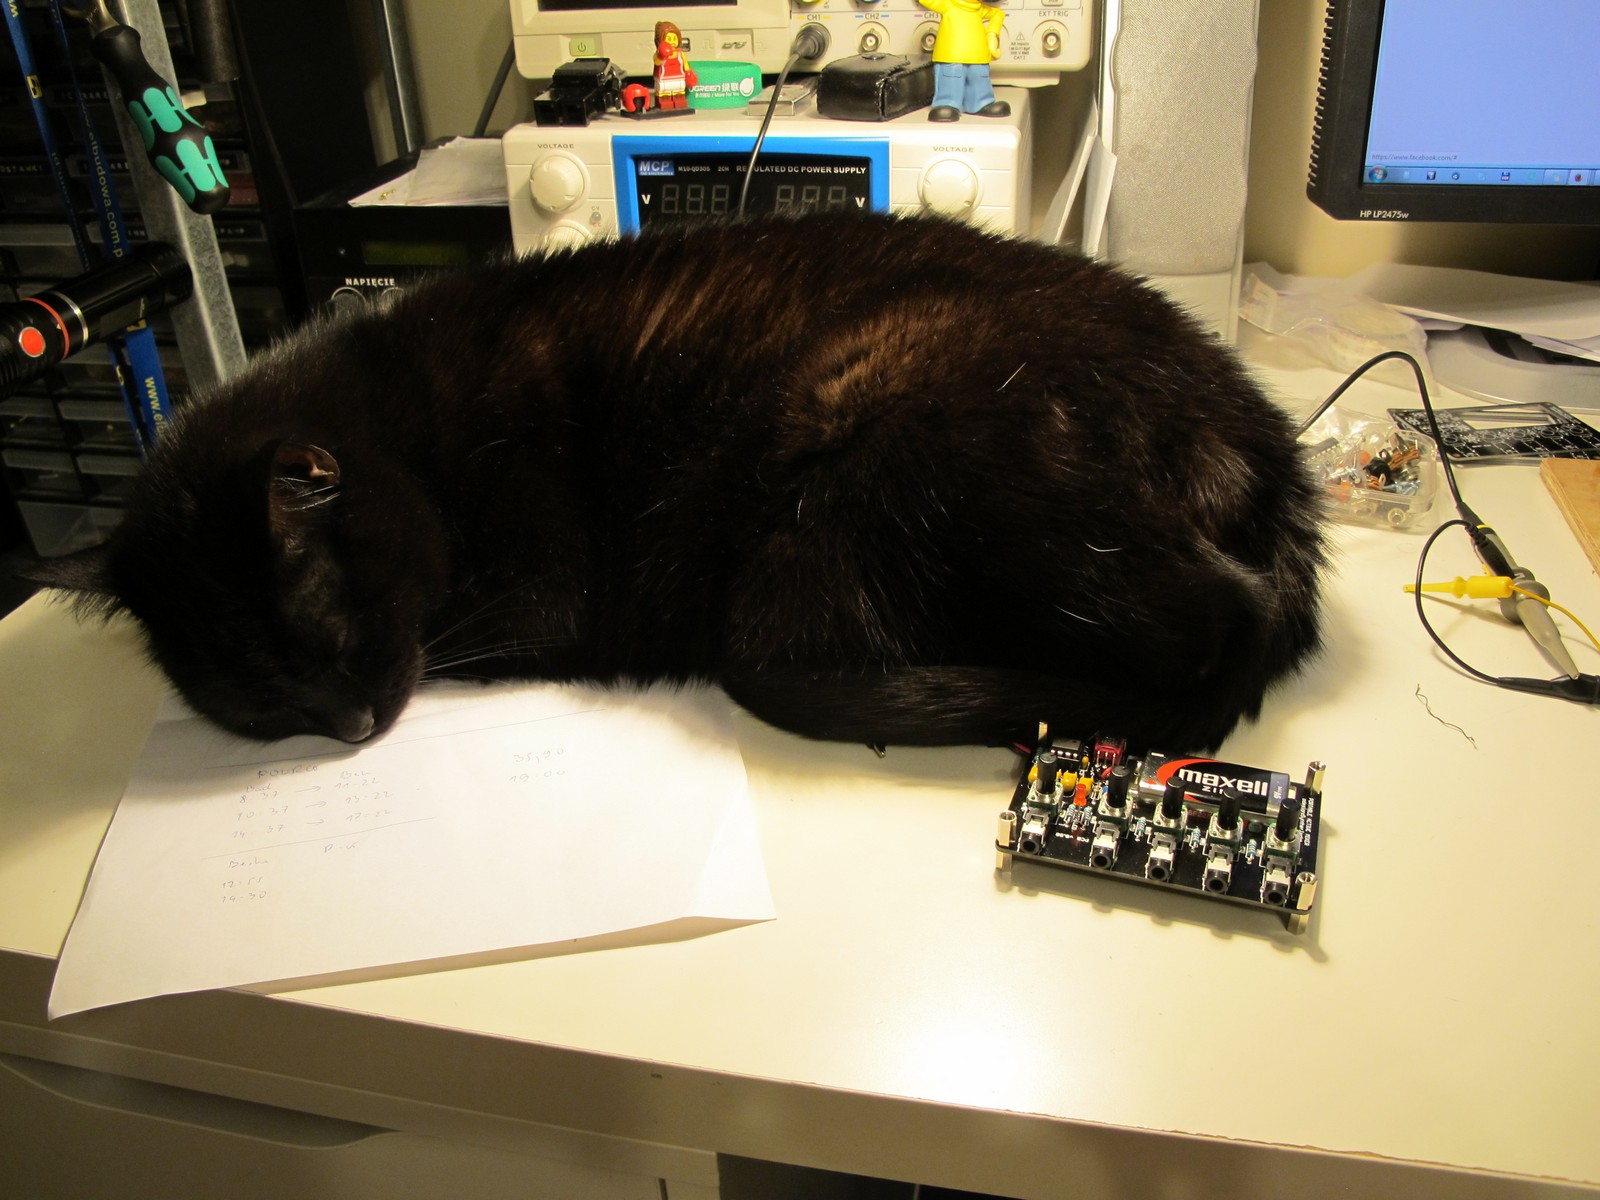 Photo shot of my cat sleeping on workbench